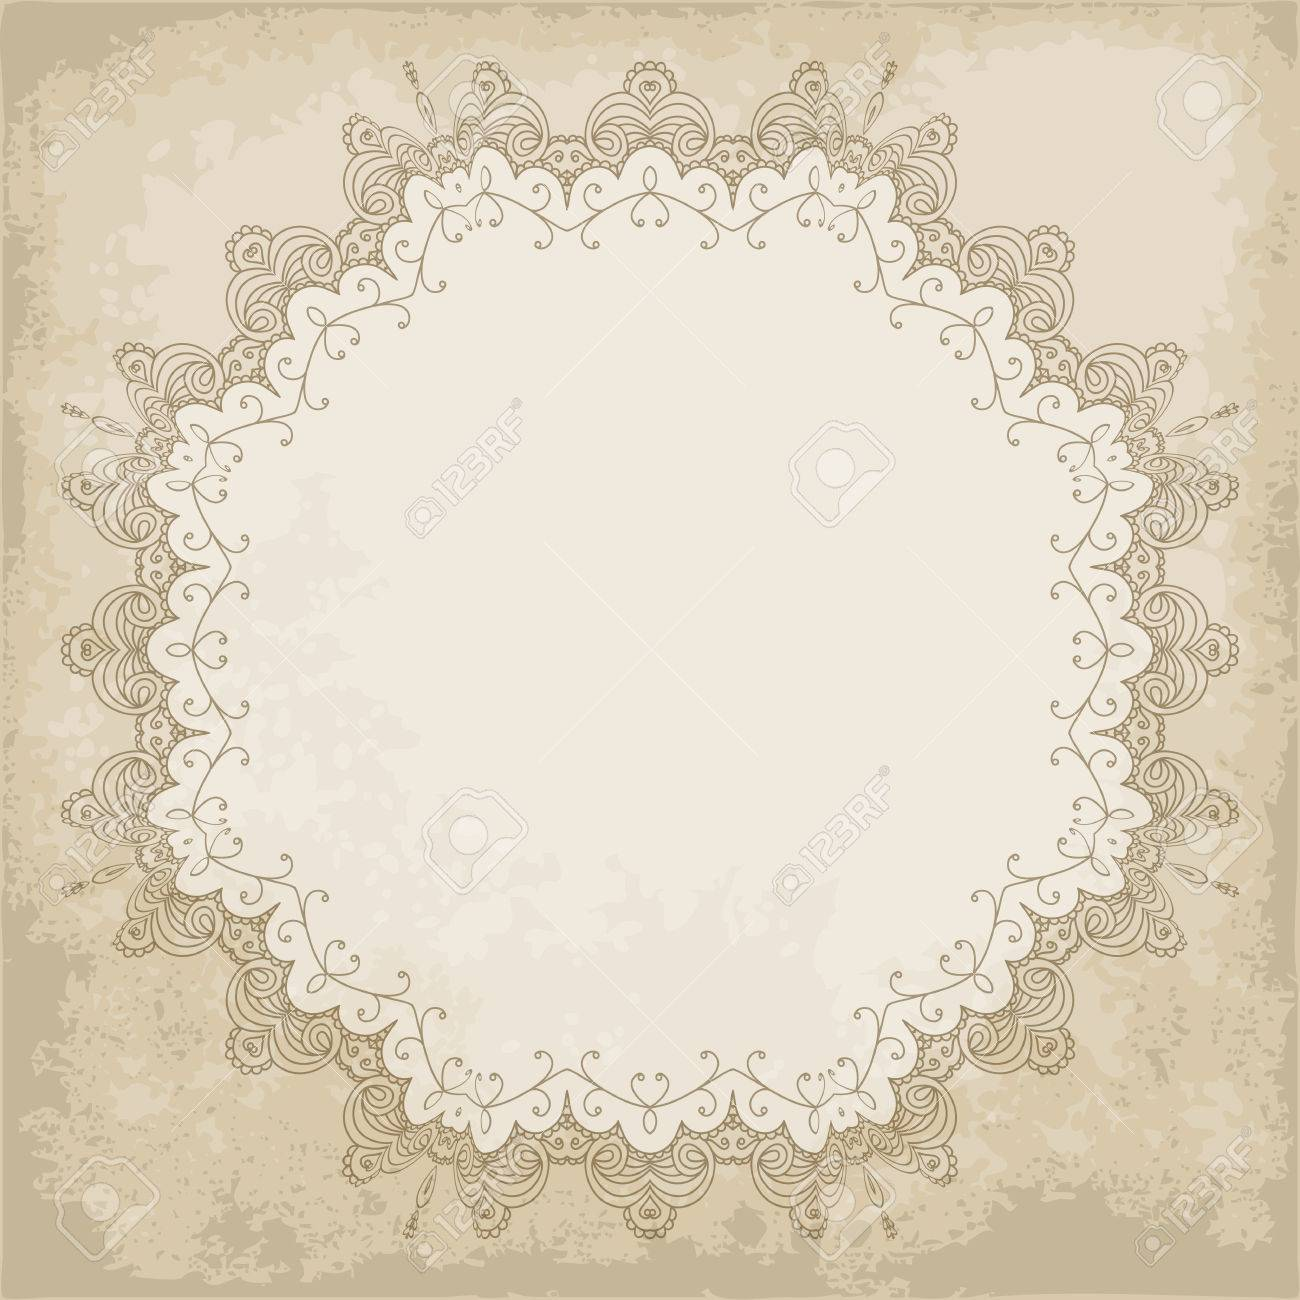 Retro Background With Hand Drawn Lace Frame On Old Paper Shabby Chic Vector Illustration